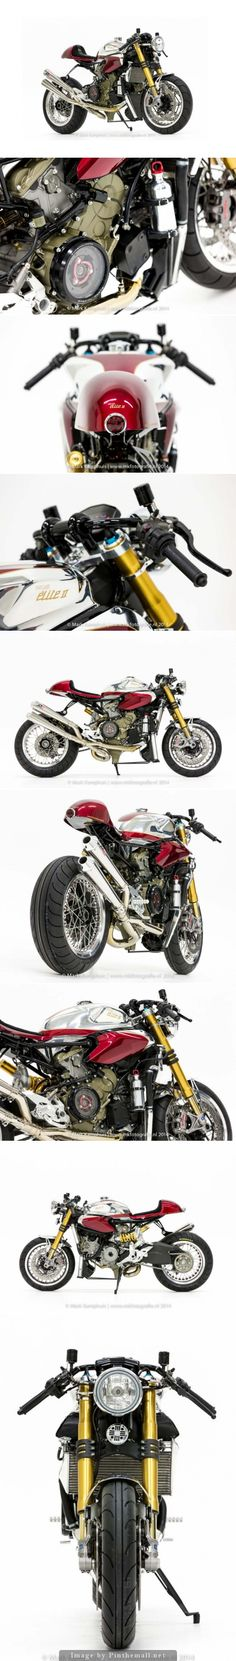 Ducati 1199 Panigale S Cafe-Racer by Moto Puro #special #custom #motorcycle